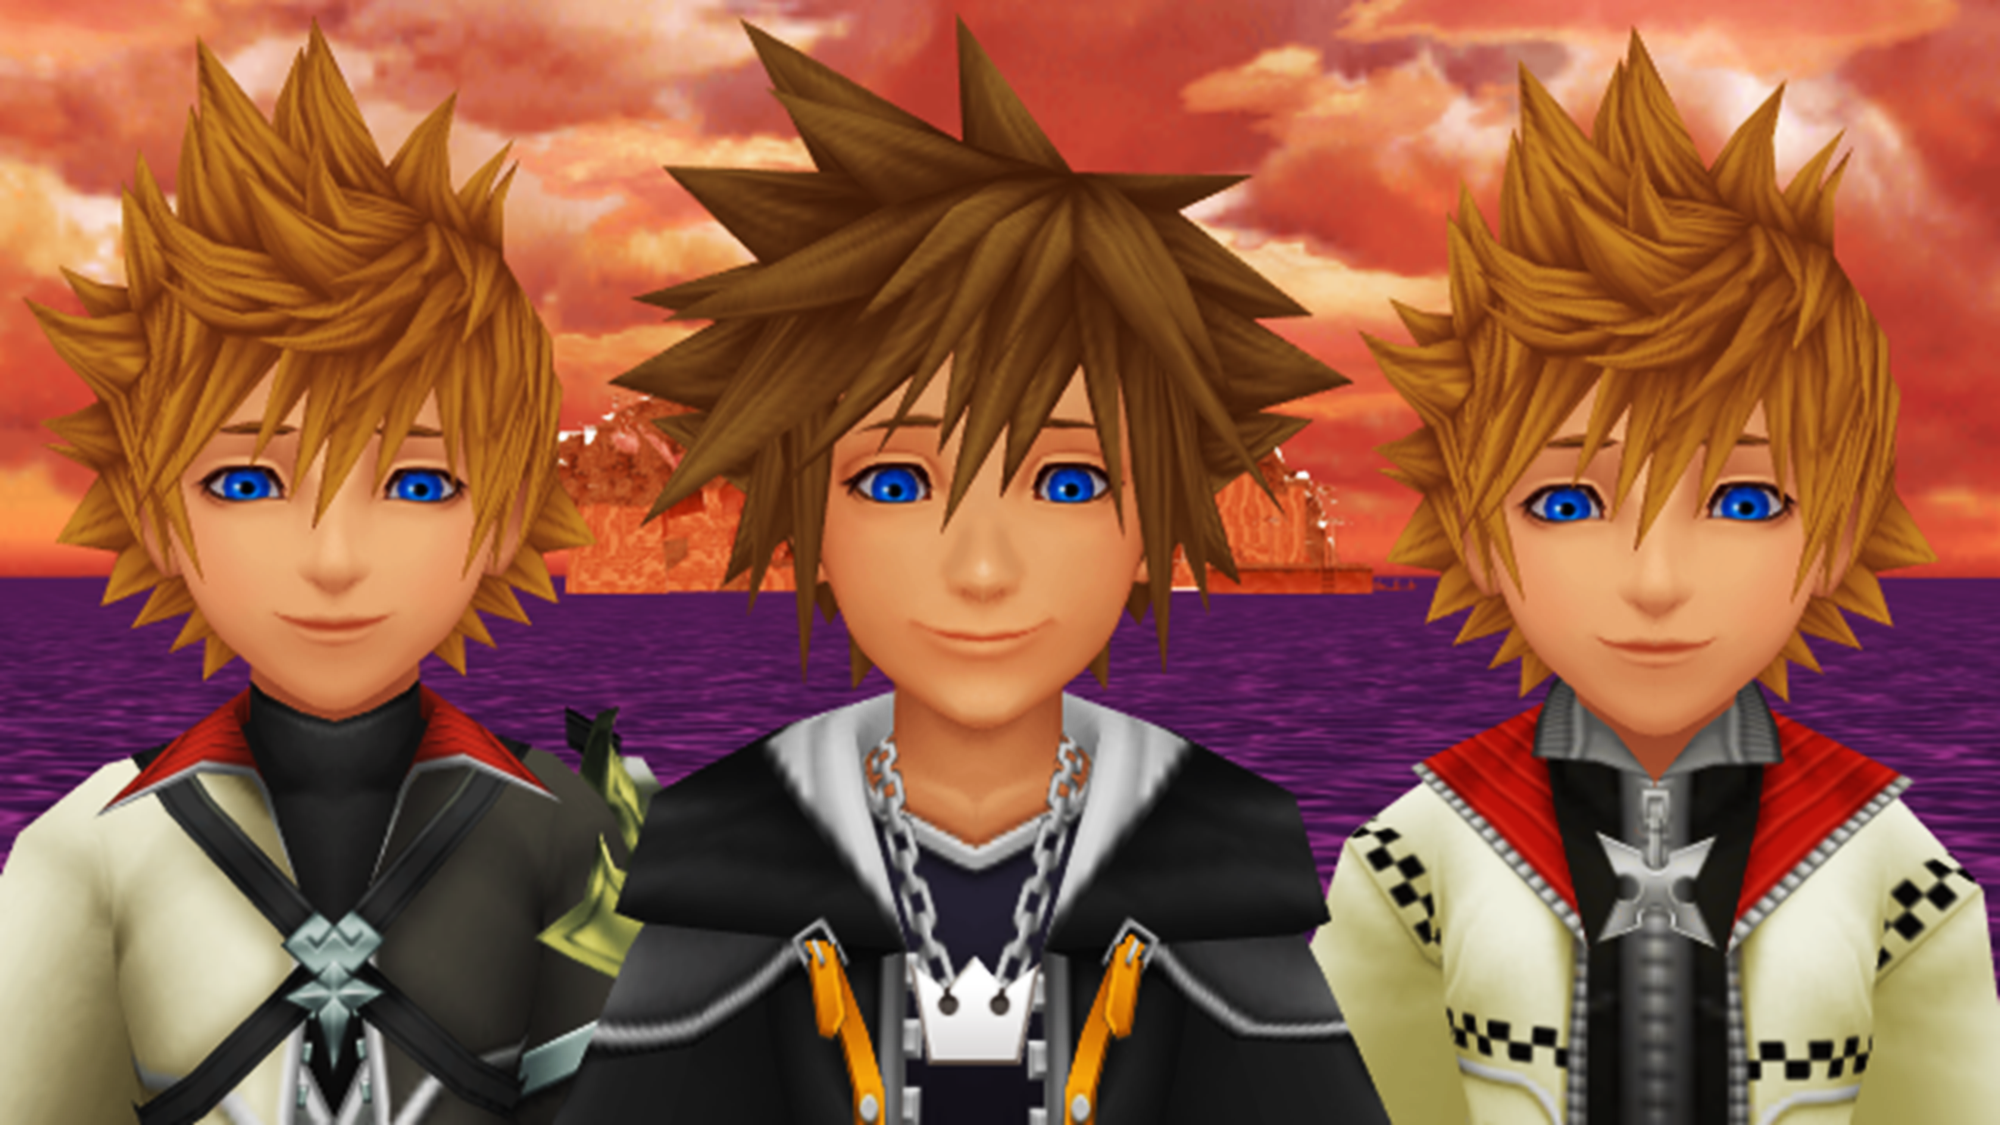 the boys of kingdom hearts images sora roxas and ventus are cool